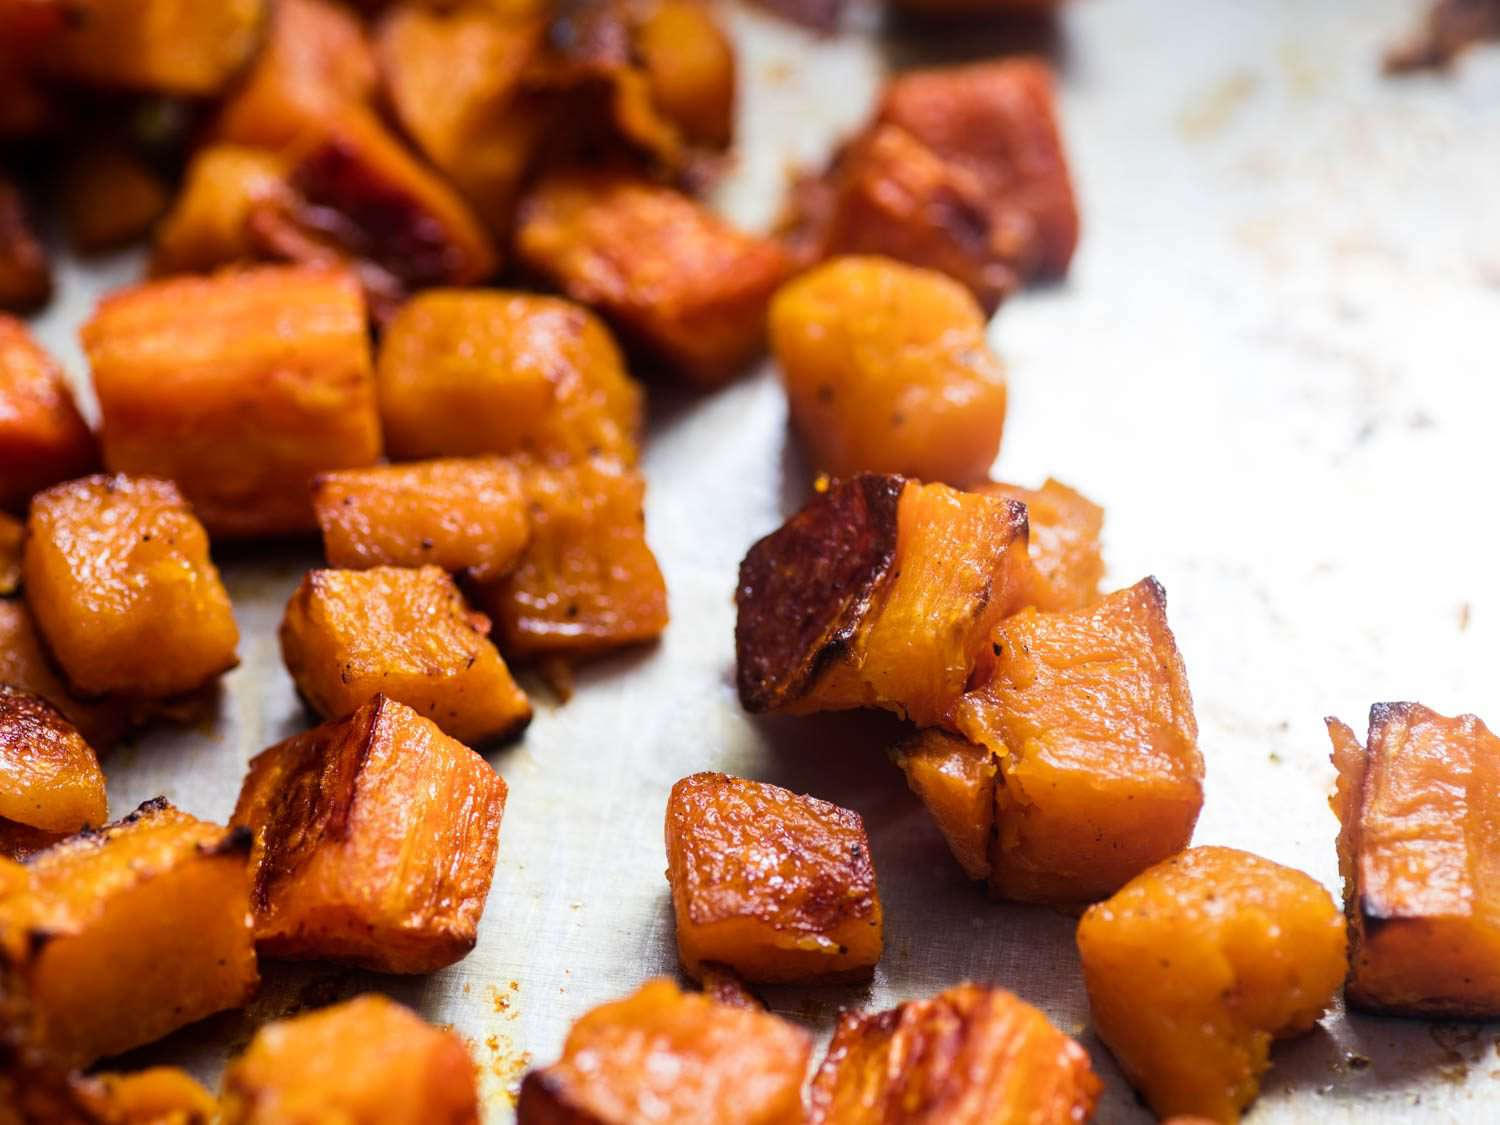 Close up of roasted squash pieces.